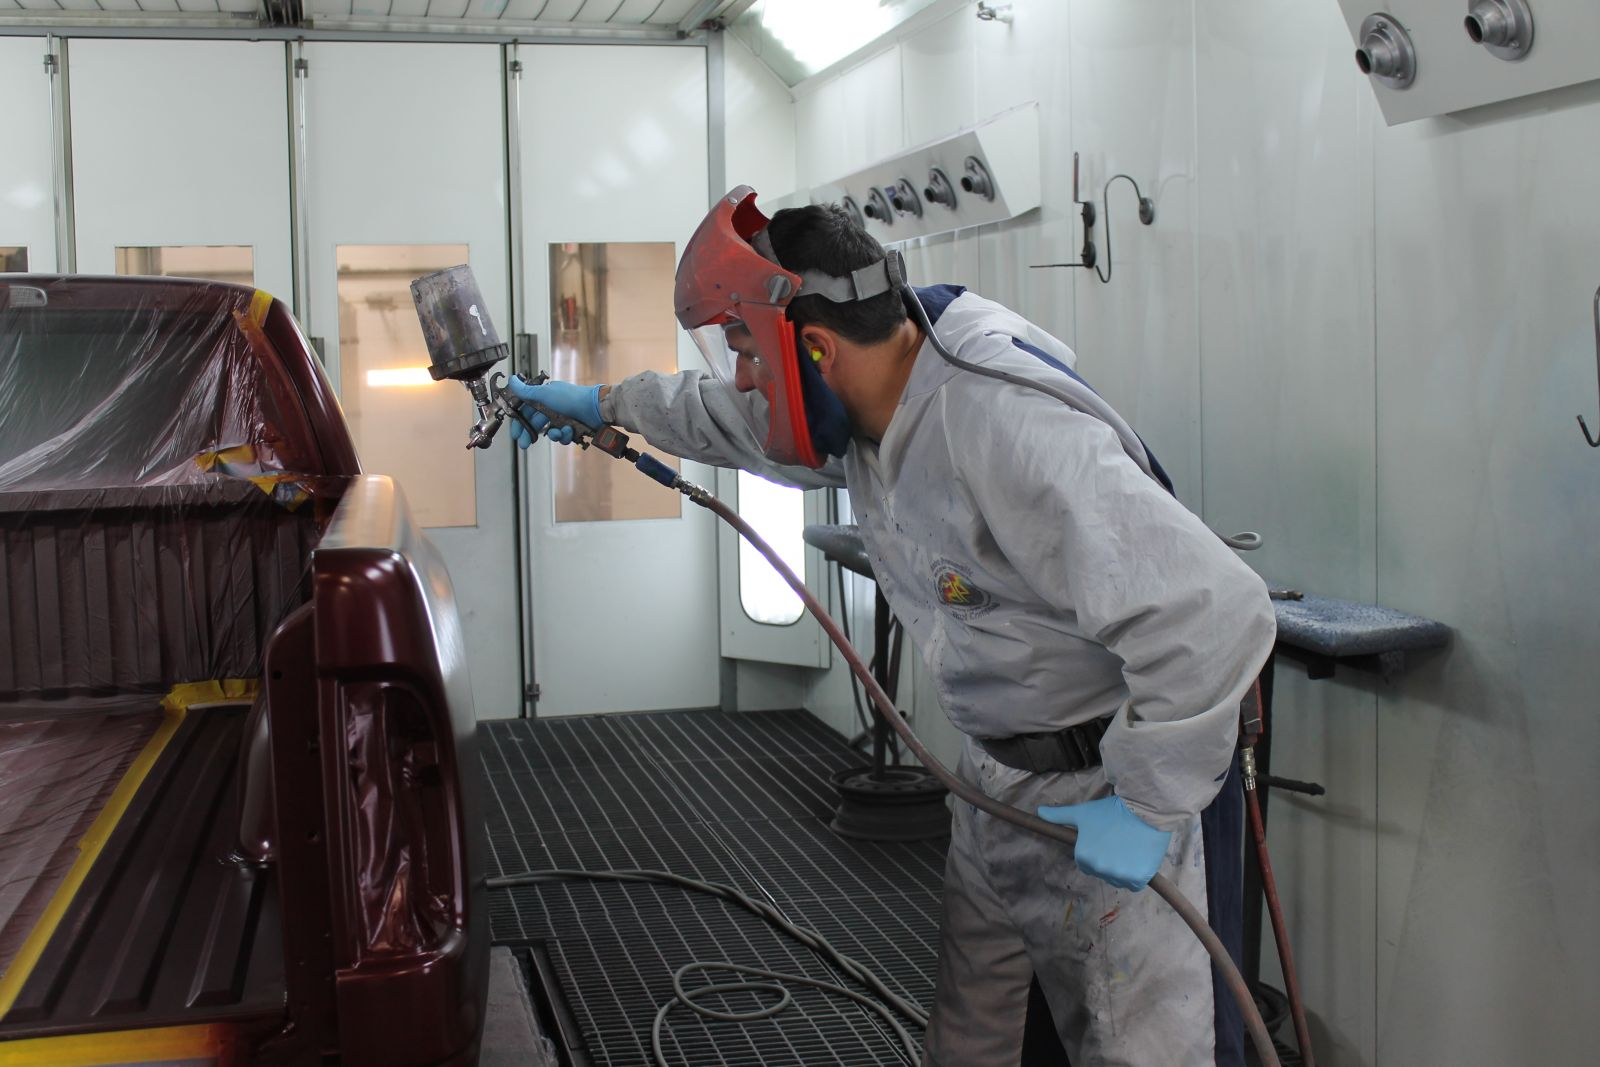 Carstar | Ray's CARSTAR: Painter in process